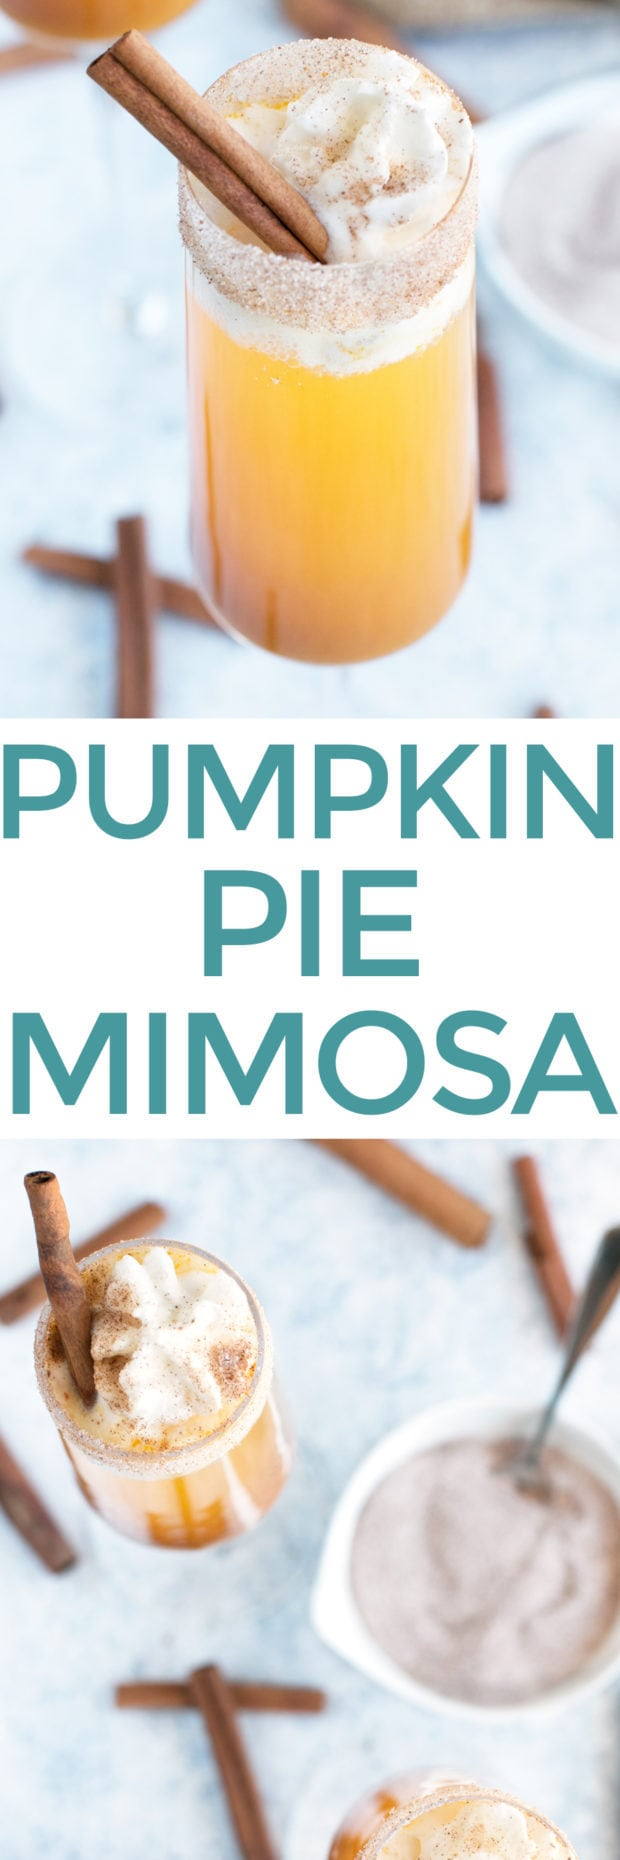 Pumpkin Pie Mimosa | cakenknife.com #cocktail #pumpkinpie #thanksgiving #recipe #champagne